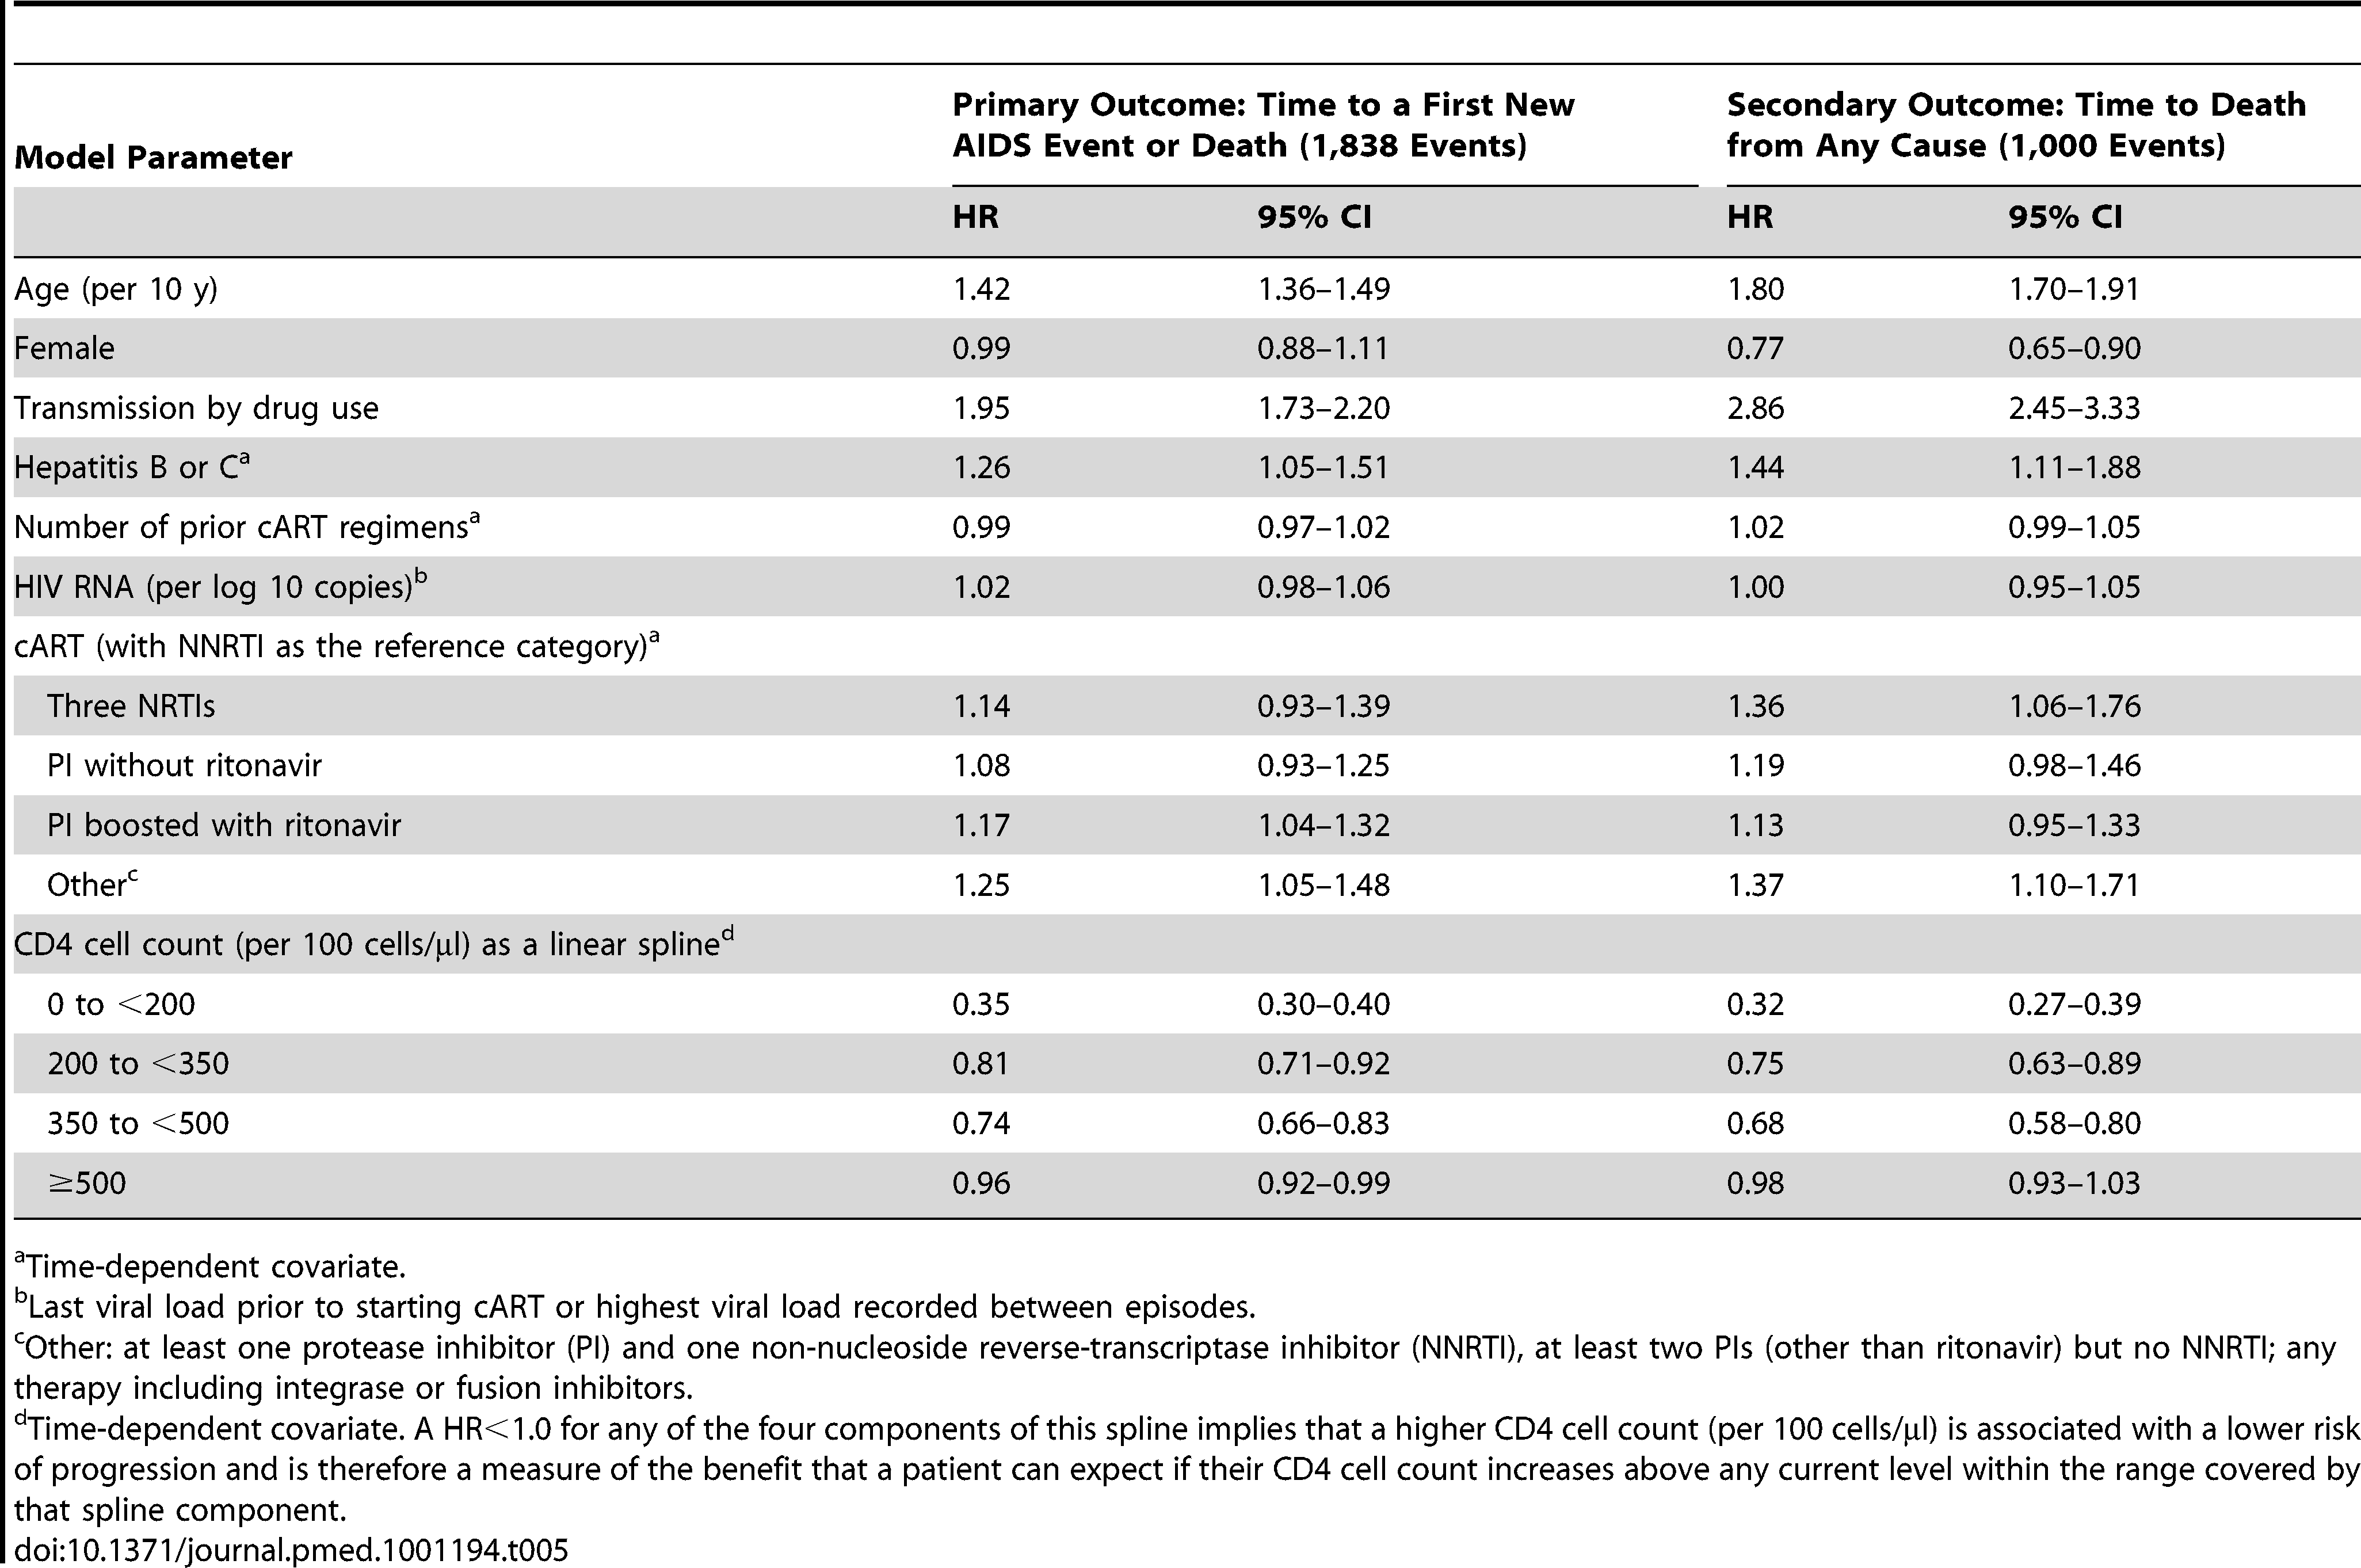 HR estimates and their 95% CIs from multivariate Cox proportional hazard models for both the primary and secondary outcome in 66,147 patients on cART with a suppressed viral load.